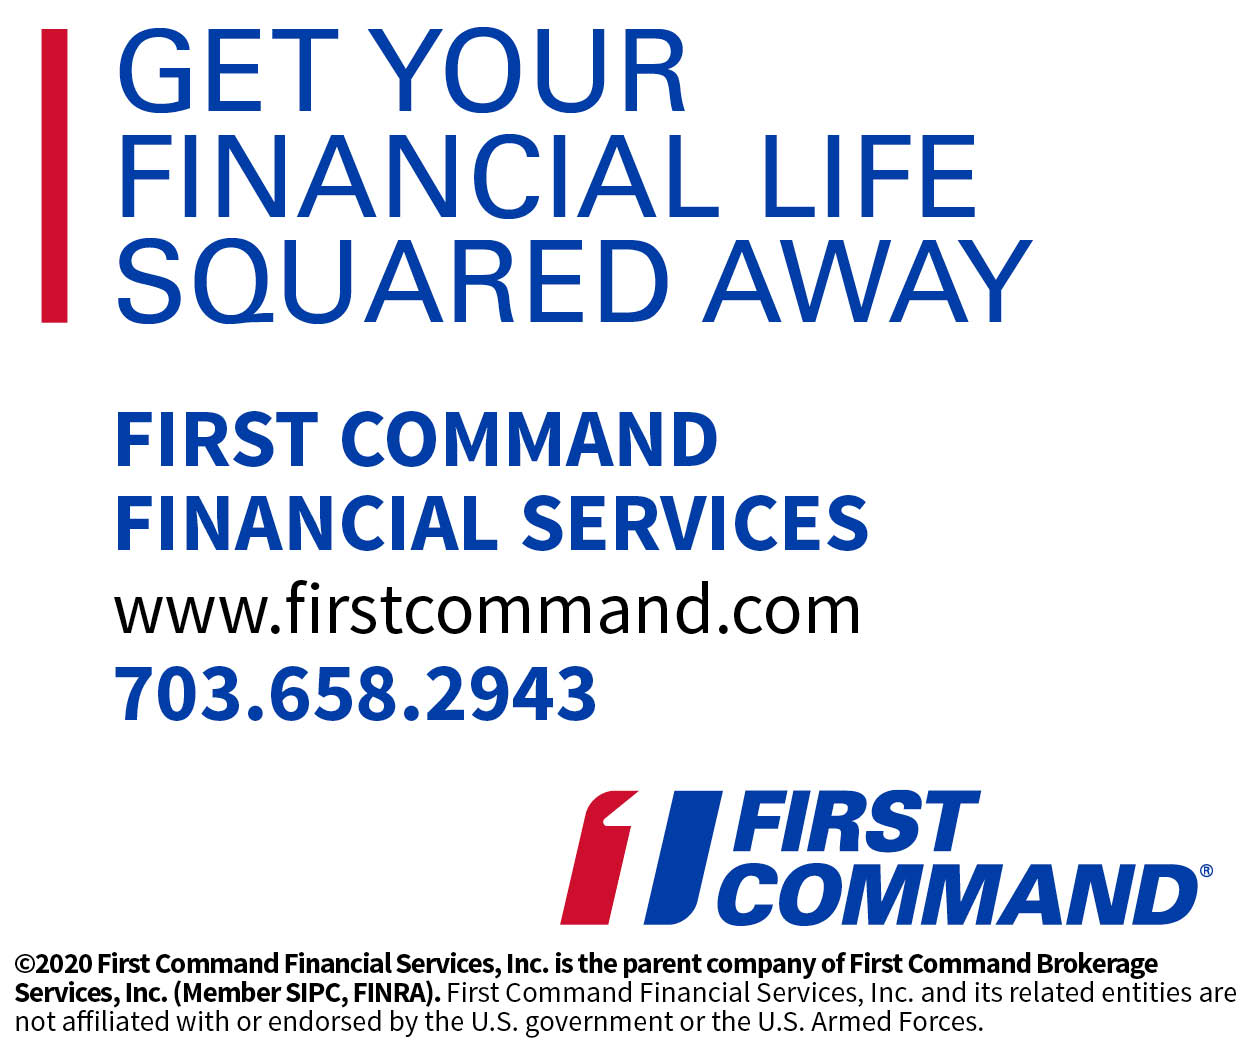 FirstCommandAdvertising